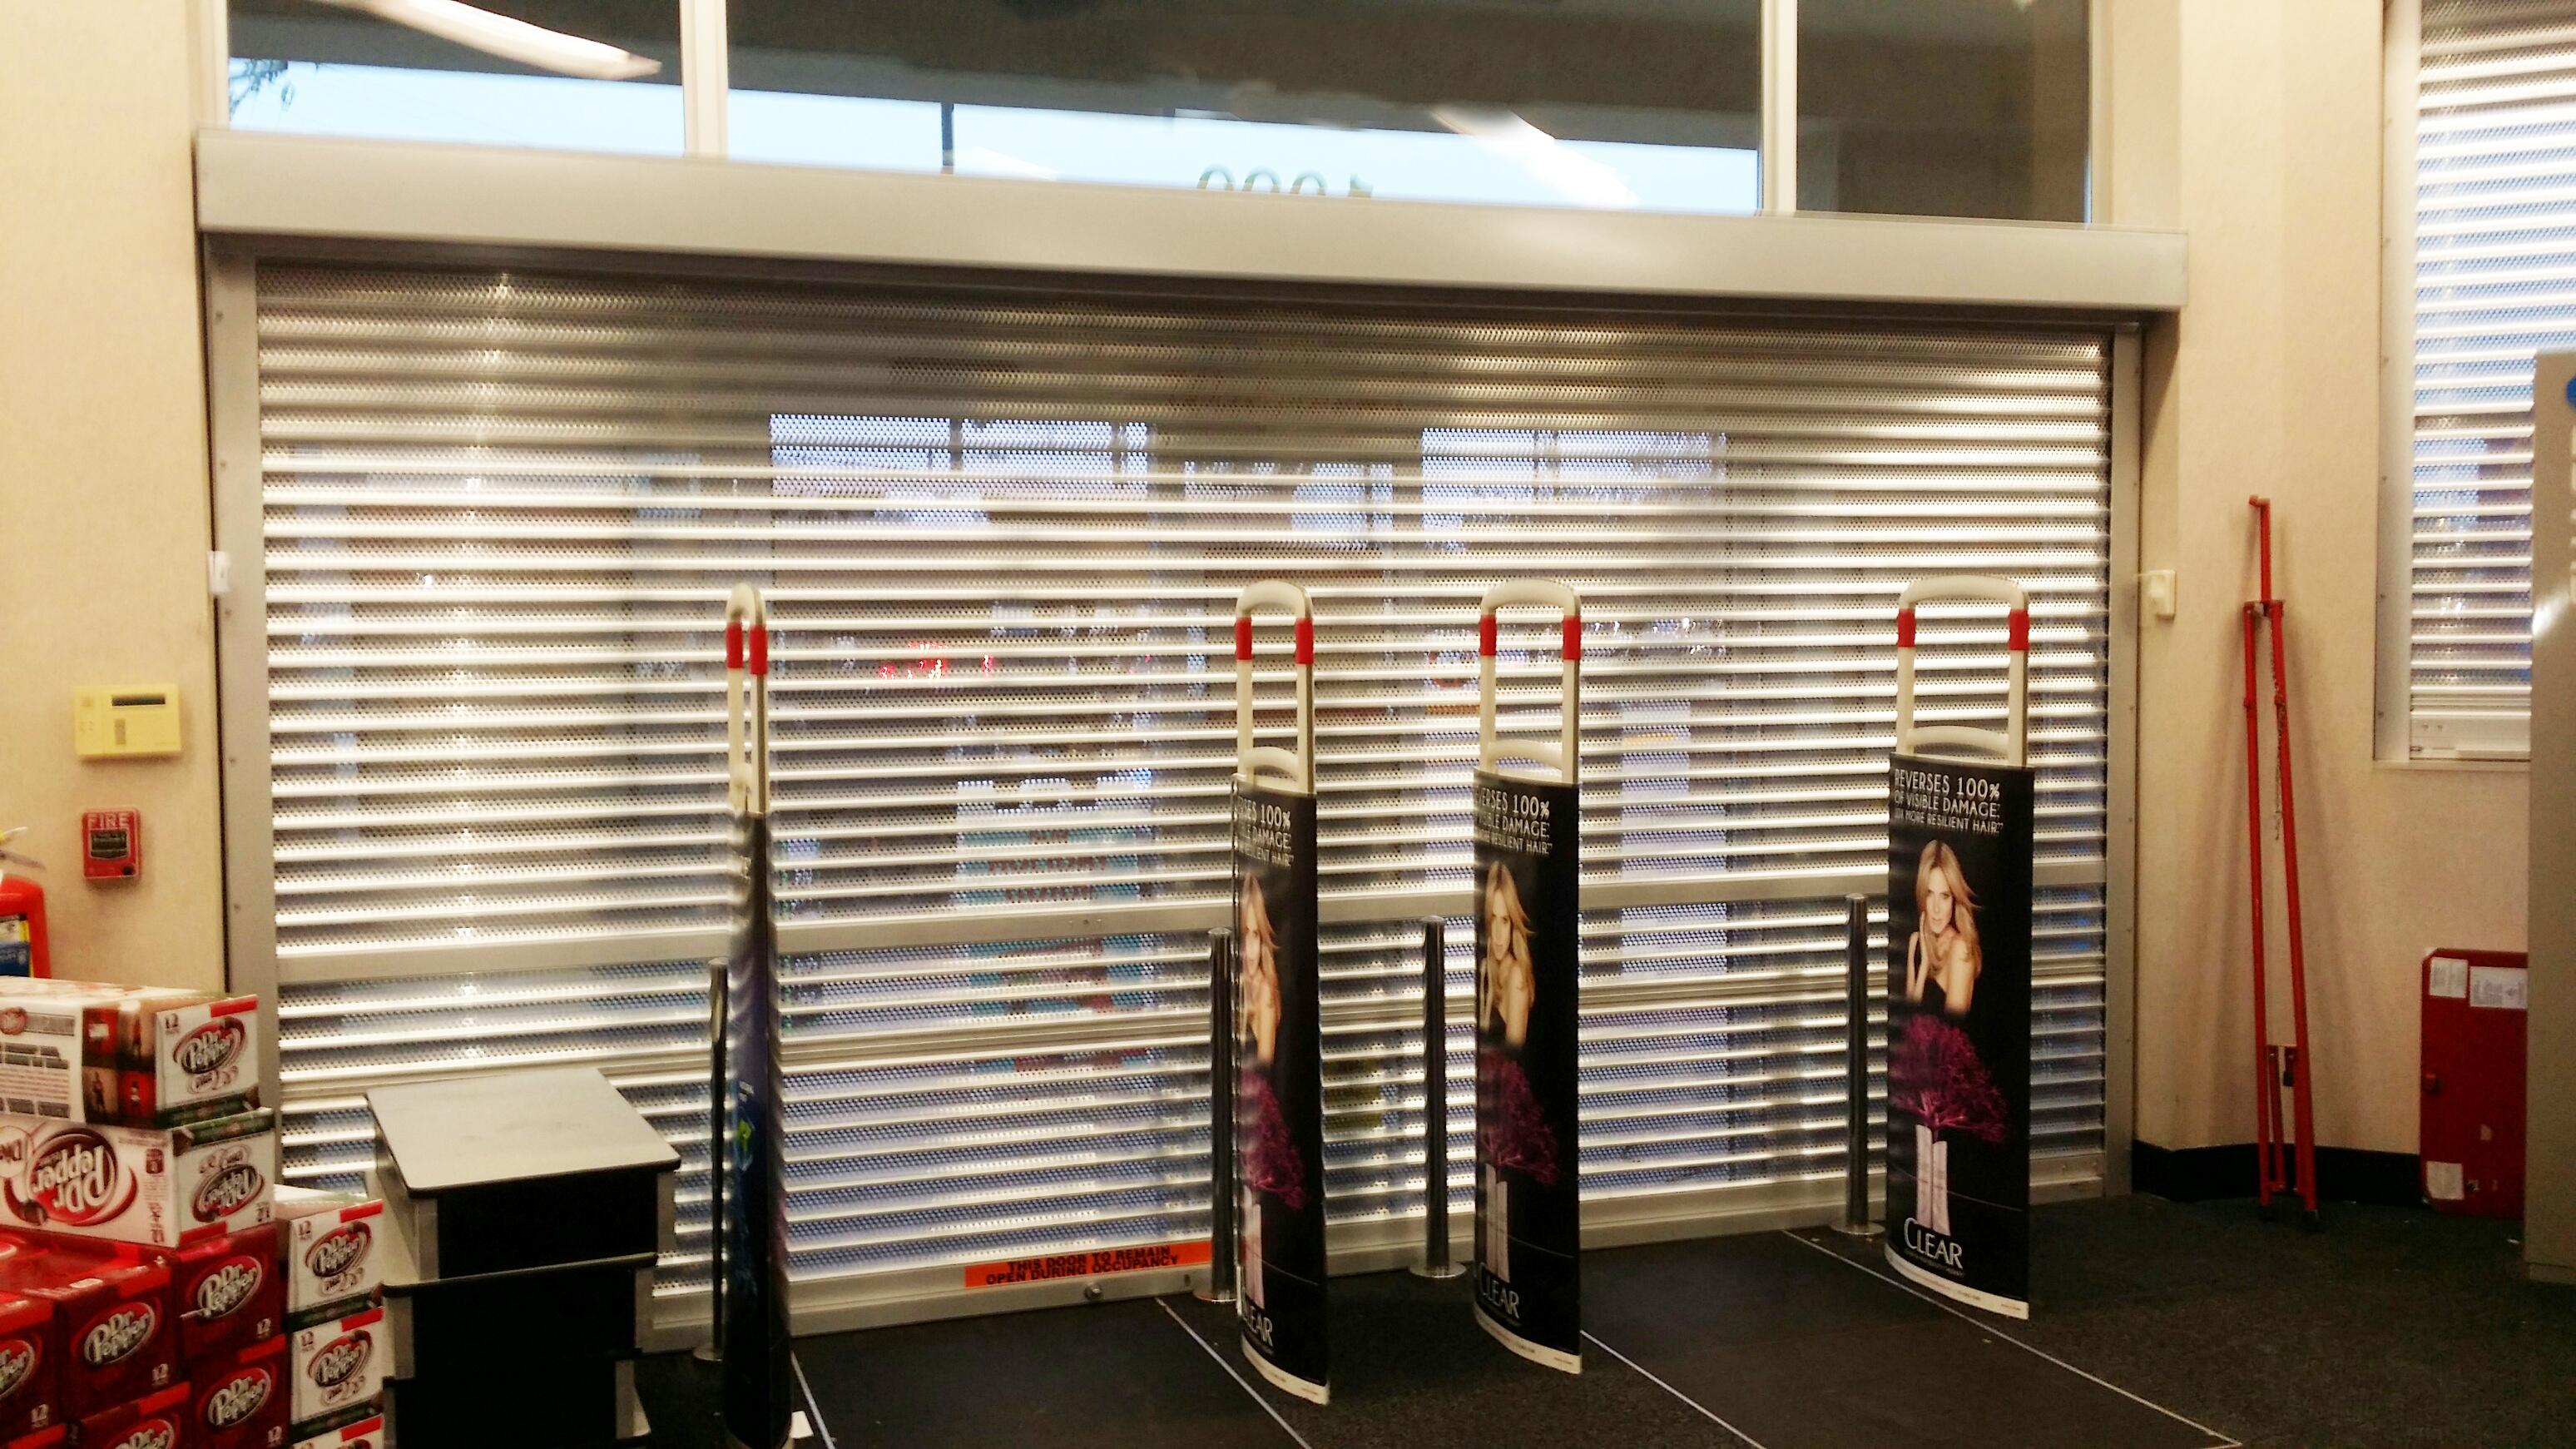 Pharmacy Security Shutter & Texas Overhead Door - Pharmacy Security Shutter Image | ProView